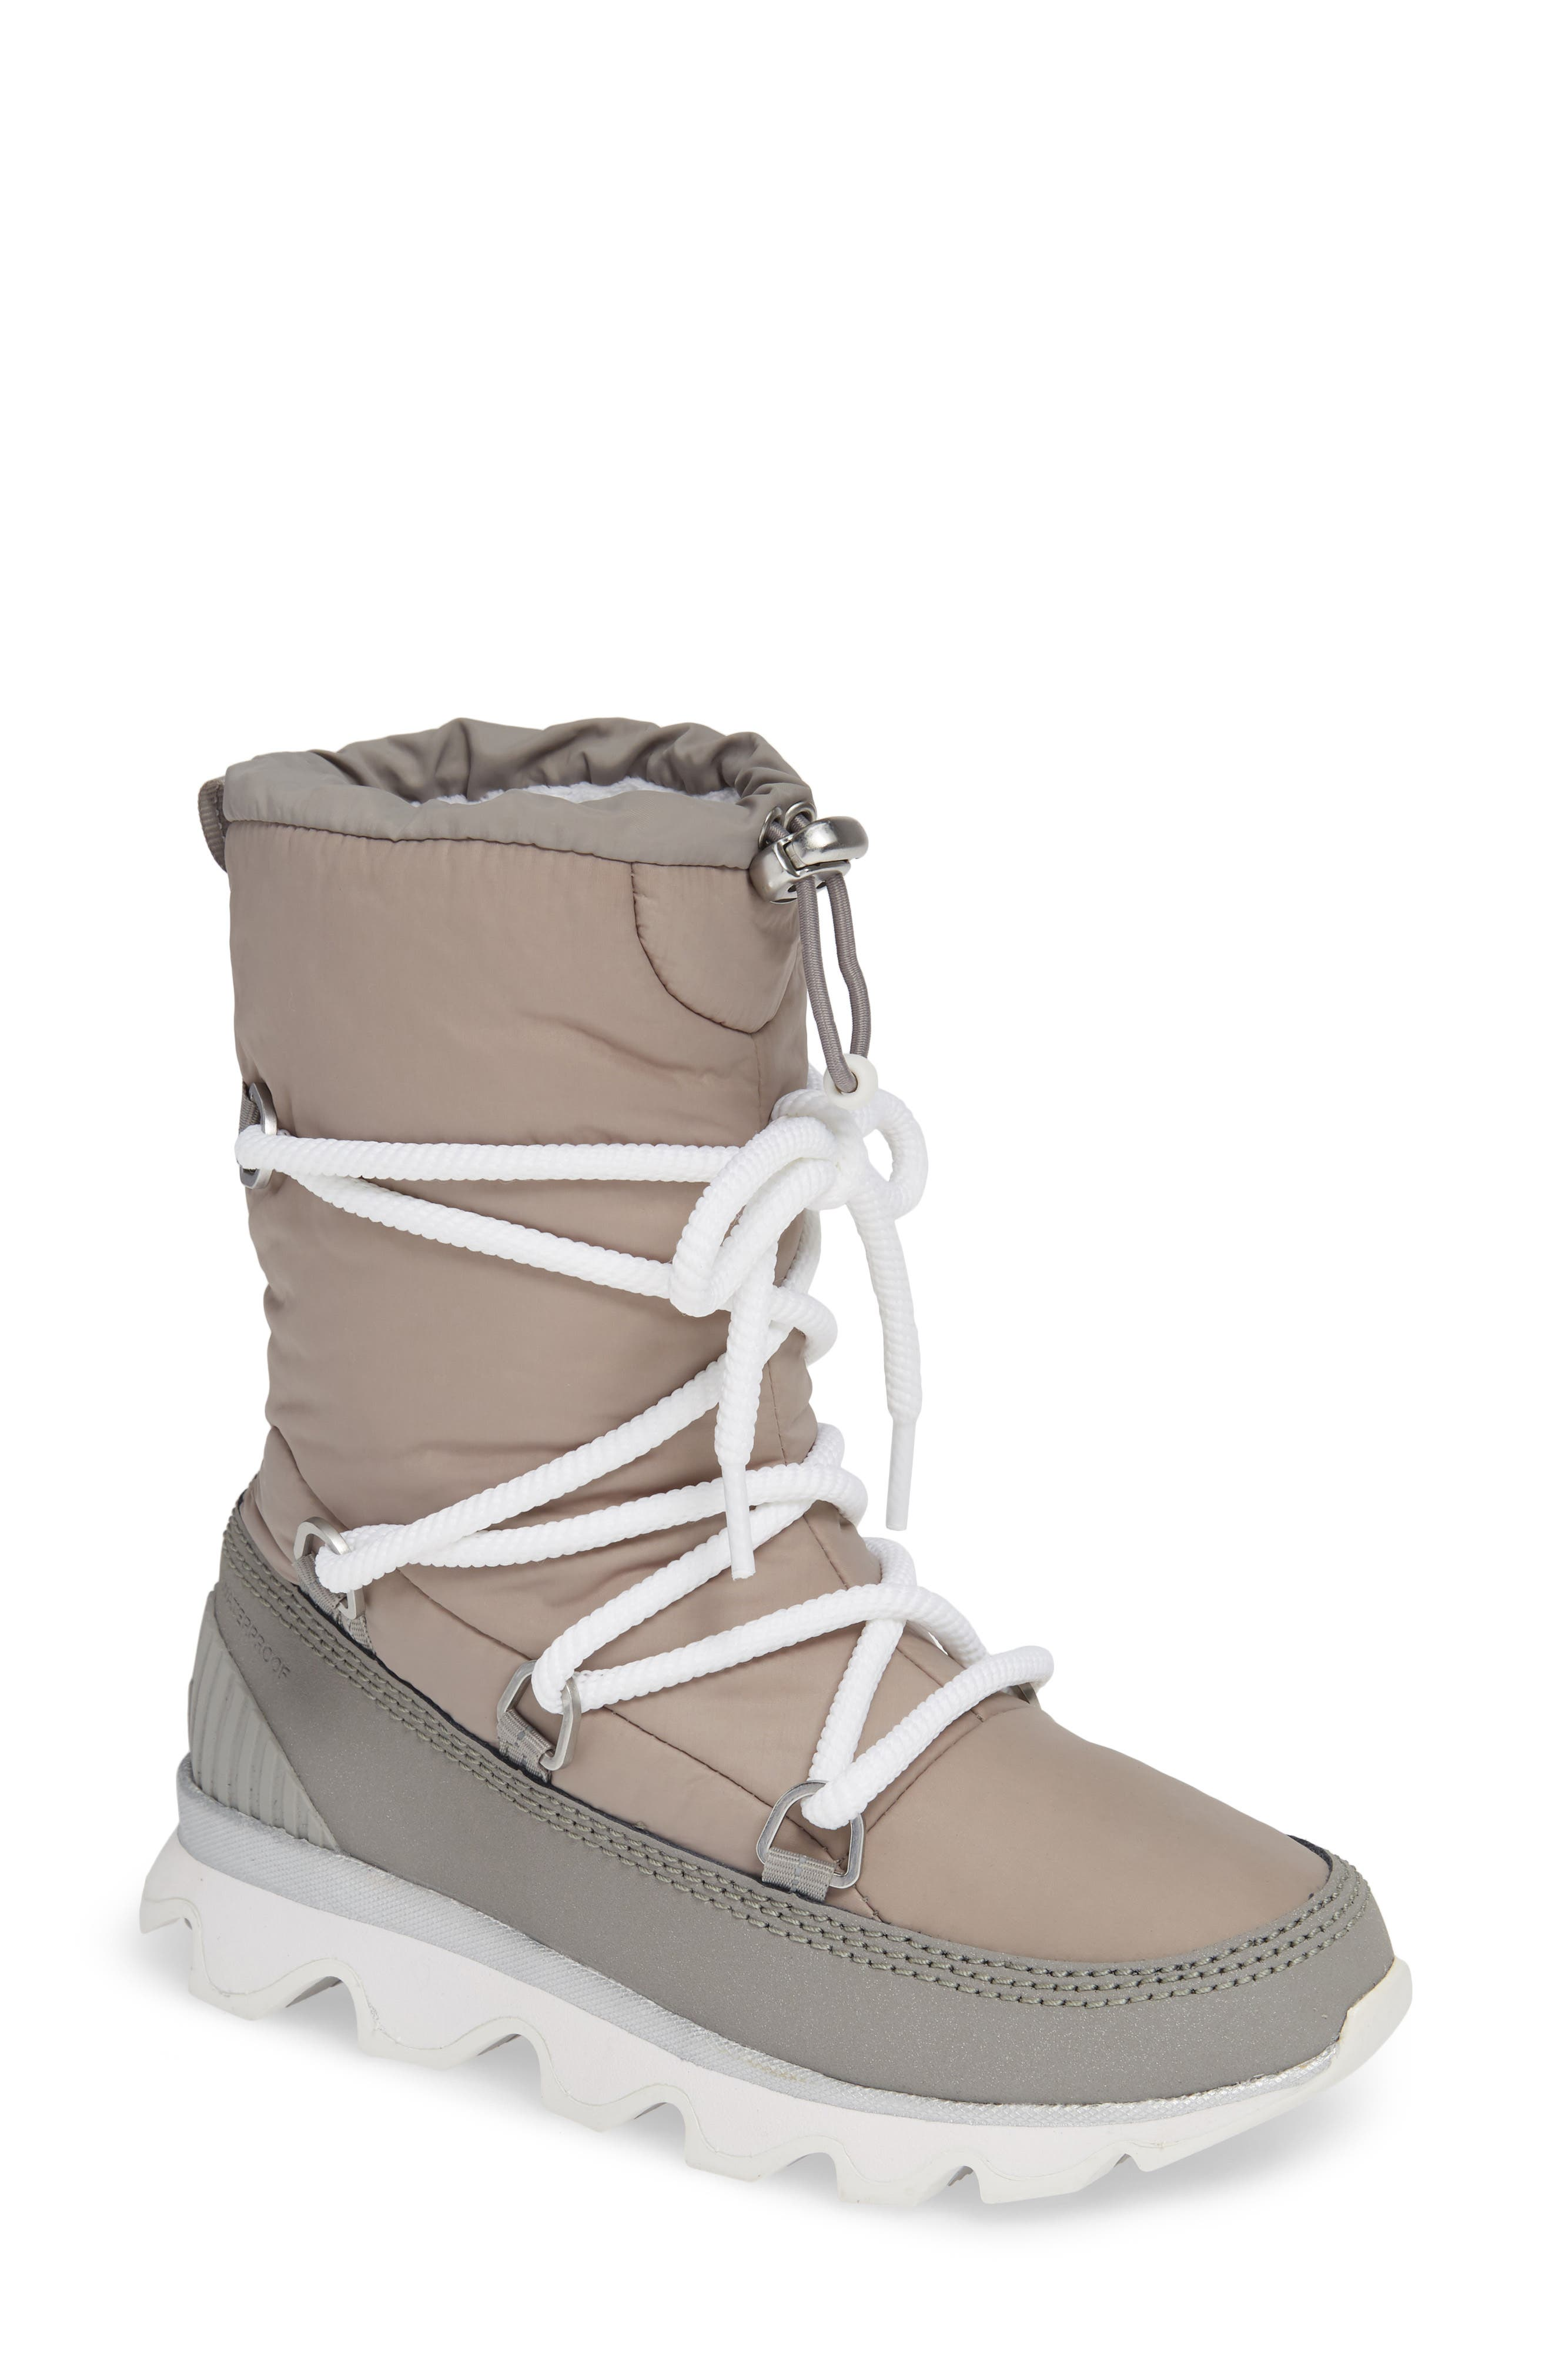 Women'S Kinetic Waterproof Cold Weather Platform Boots in Glitter-Chrome Grey White